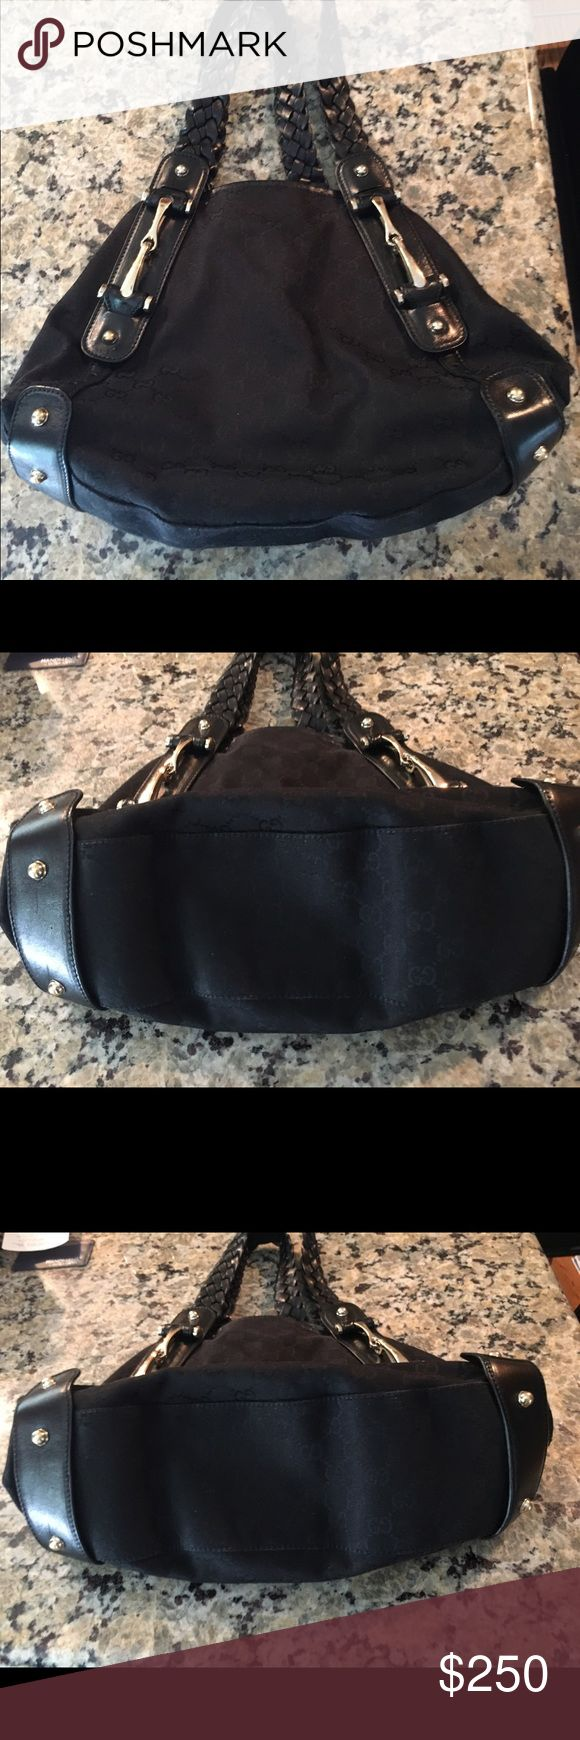 Authentic black Gucci bag Authentic black fabric/leather Gucci bag. Gently used, can't see wear on corners. Gucci Bags Shoulder Bags